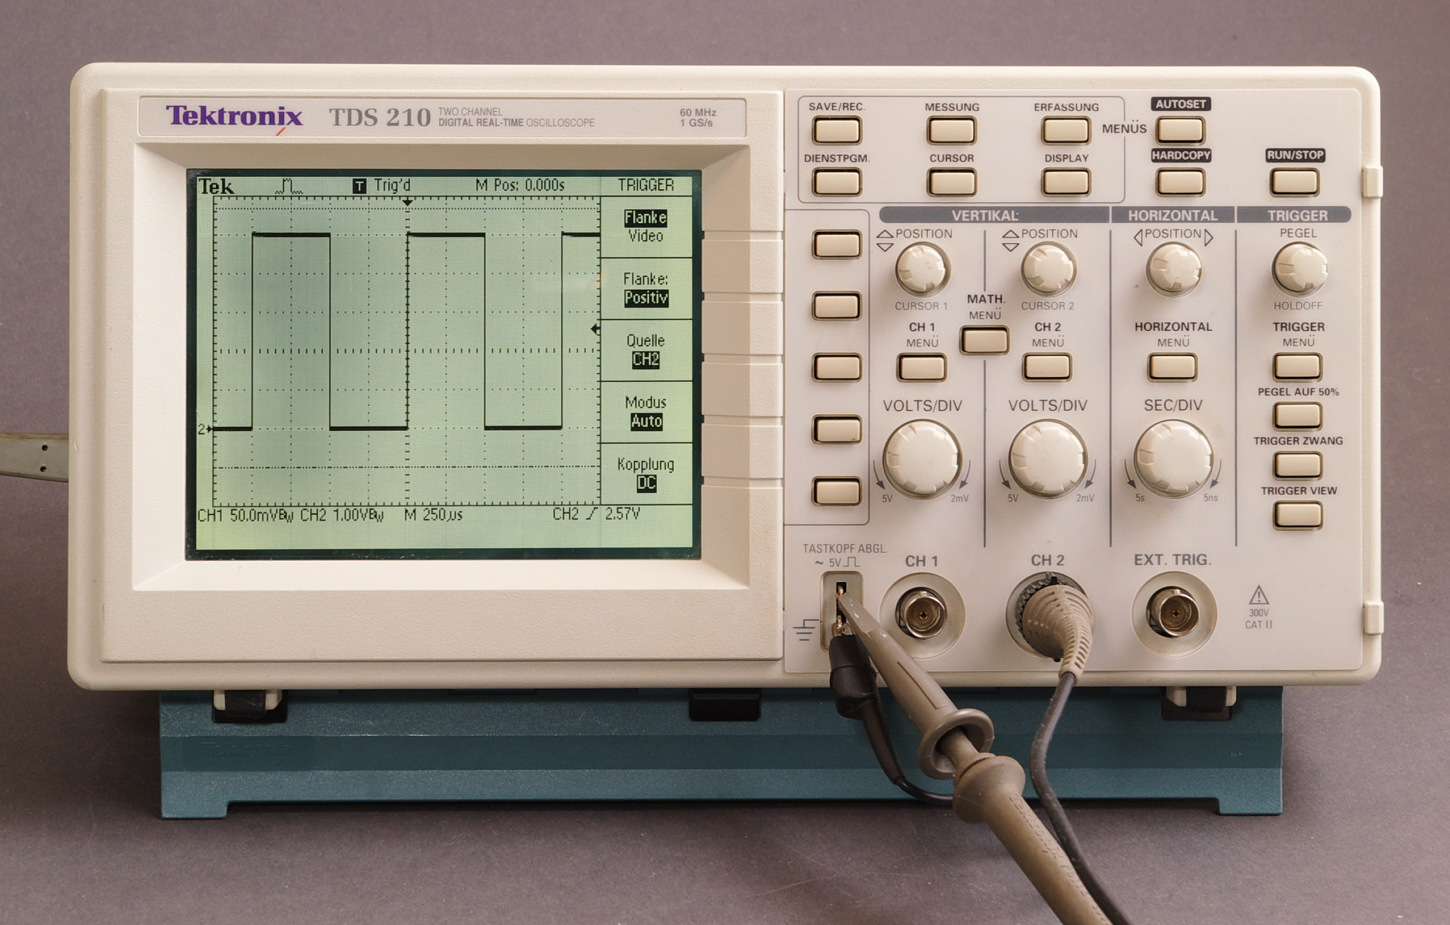 Digital storage oscilloscope - Wikipedia